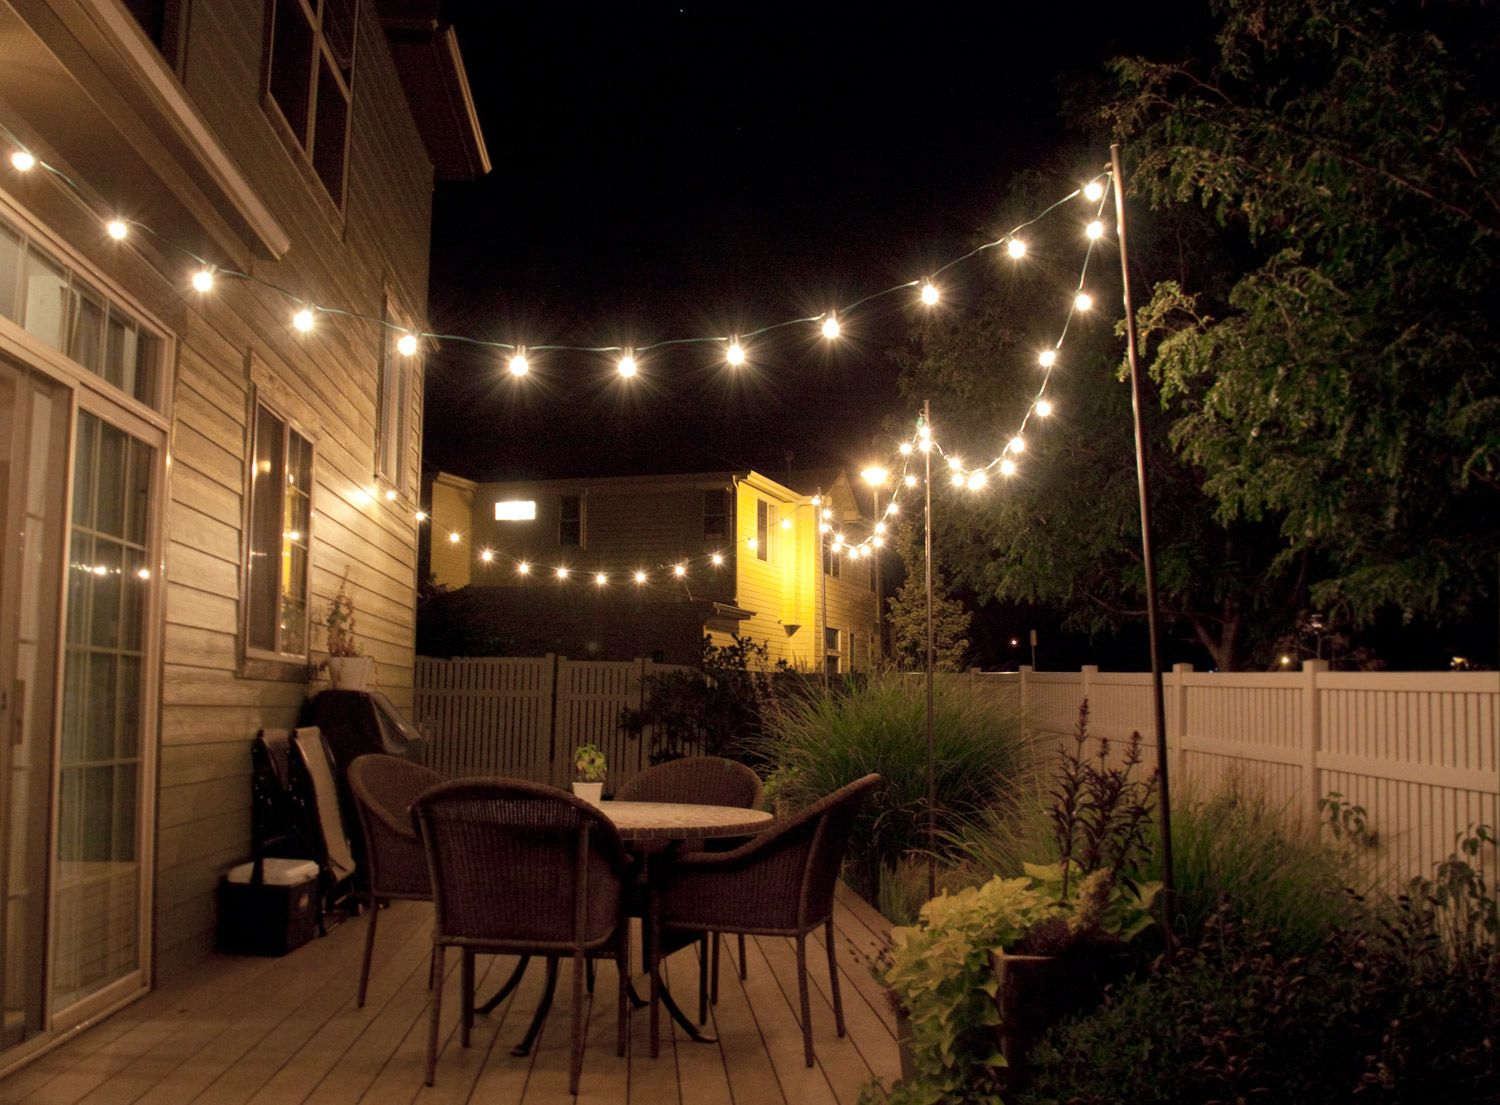 Outdoor String Lighting Ideas Awesome How To Make Inexpensive Poles To Hang String Lights On  Café Style